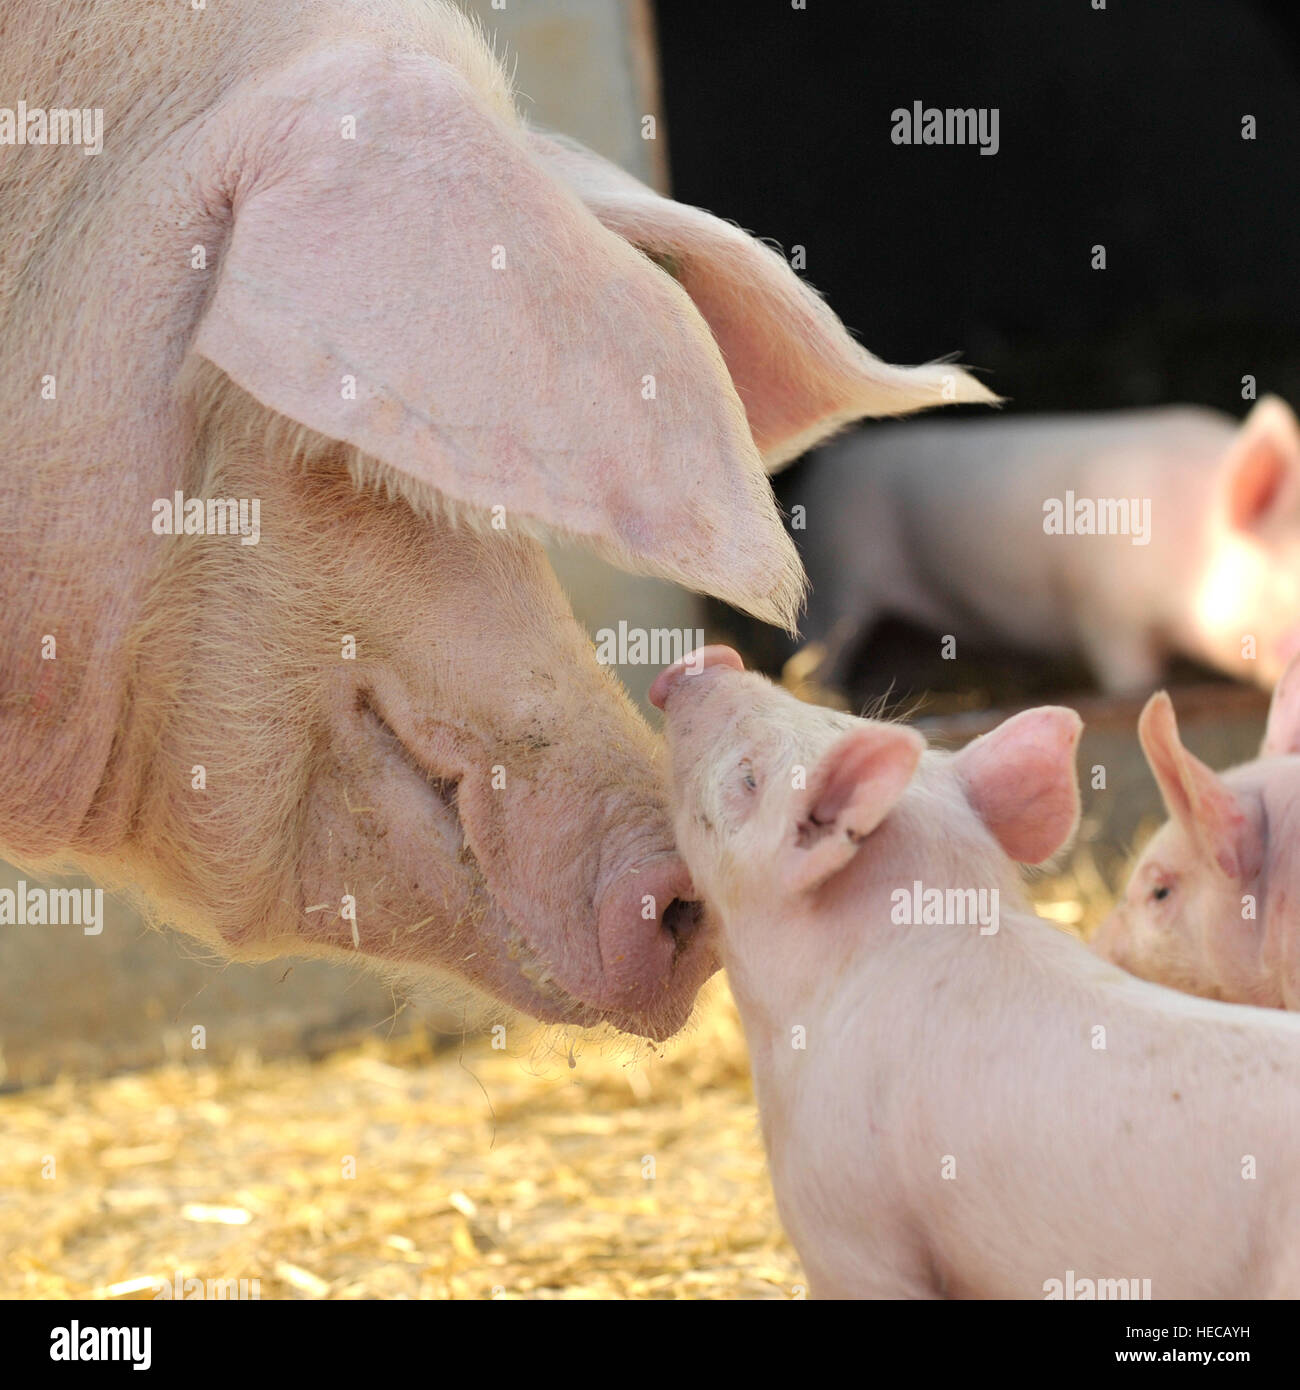 piglet and mother mixed breeds - Stock Image